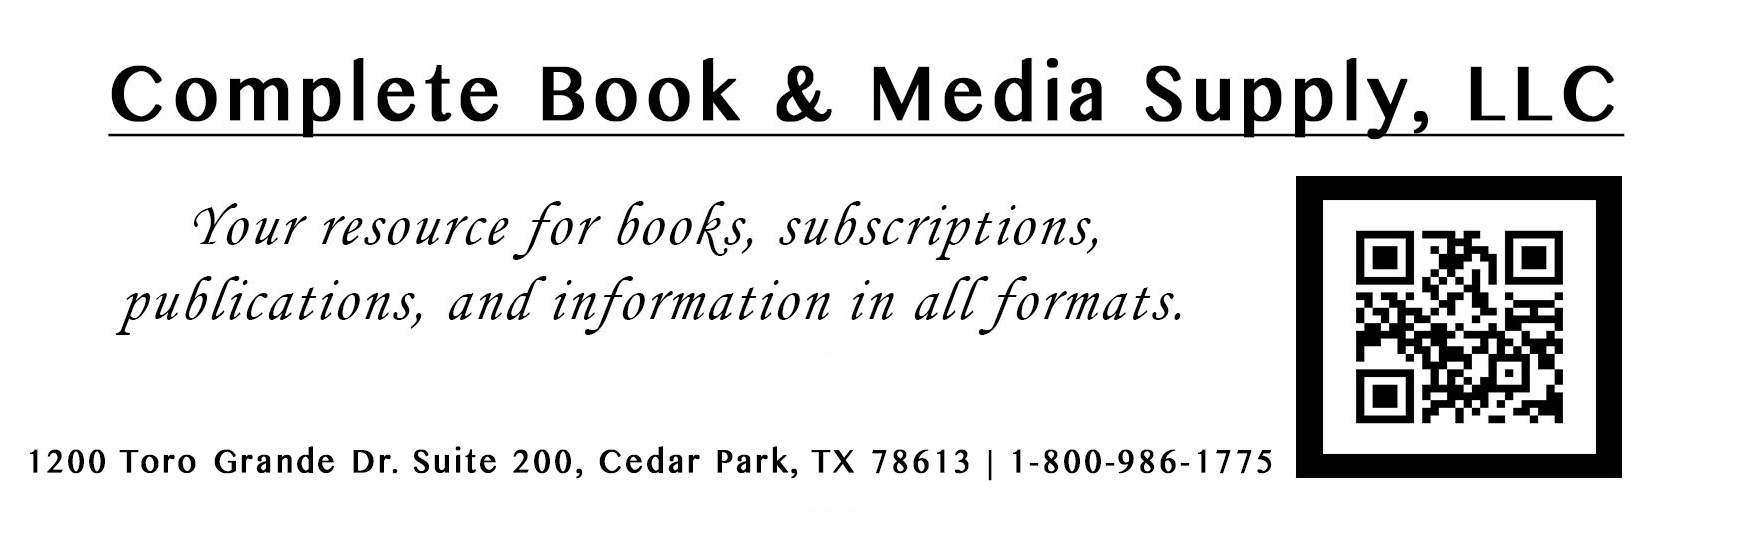 Complete Book & Media Supply, LLC